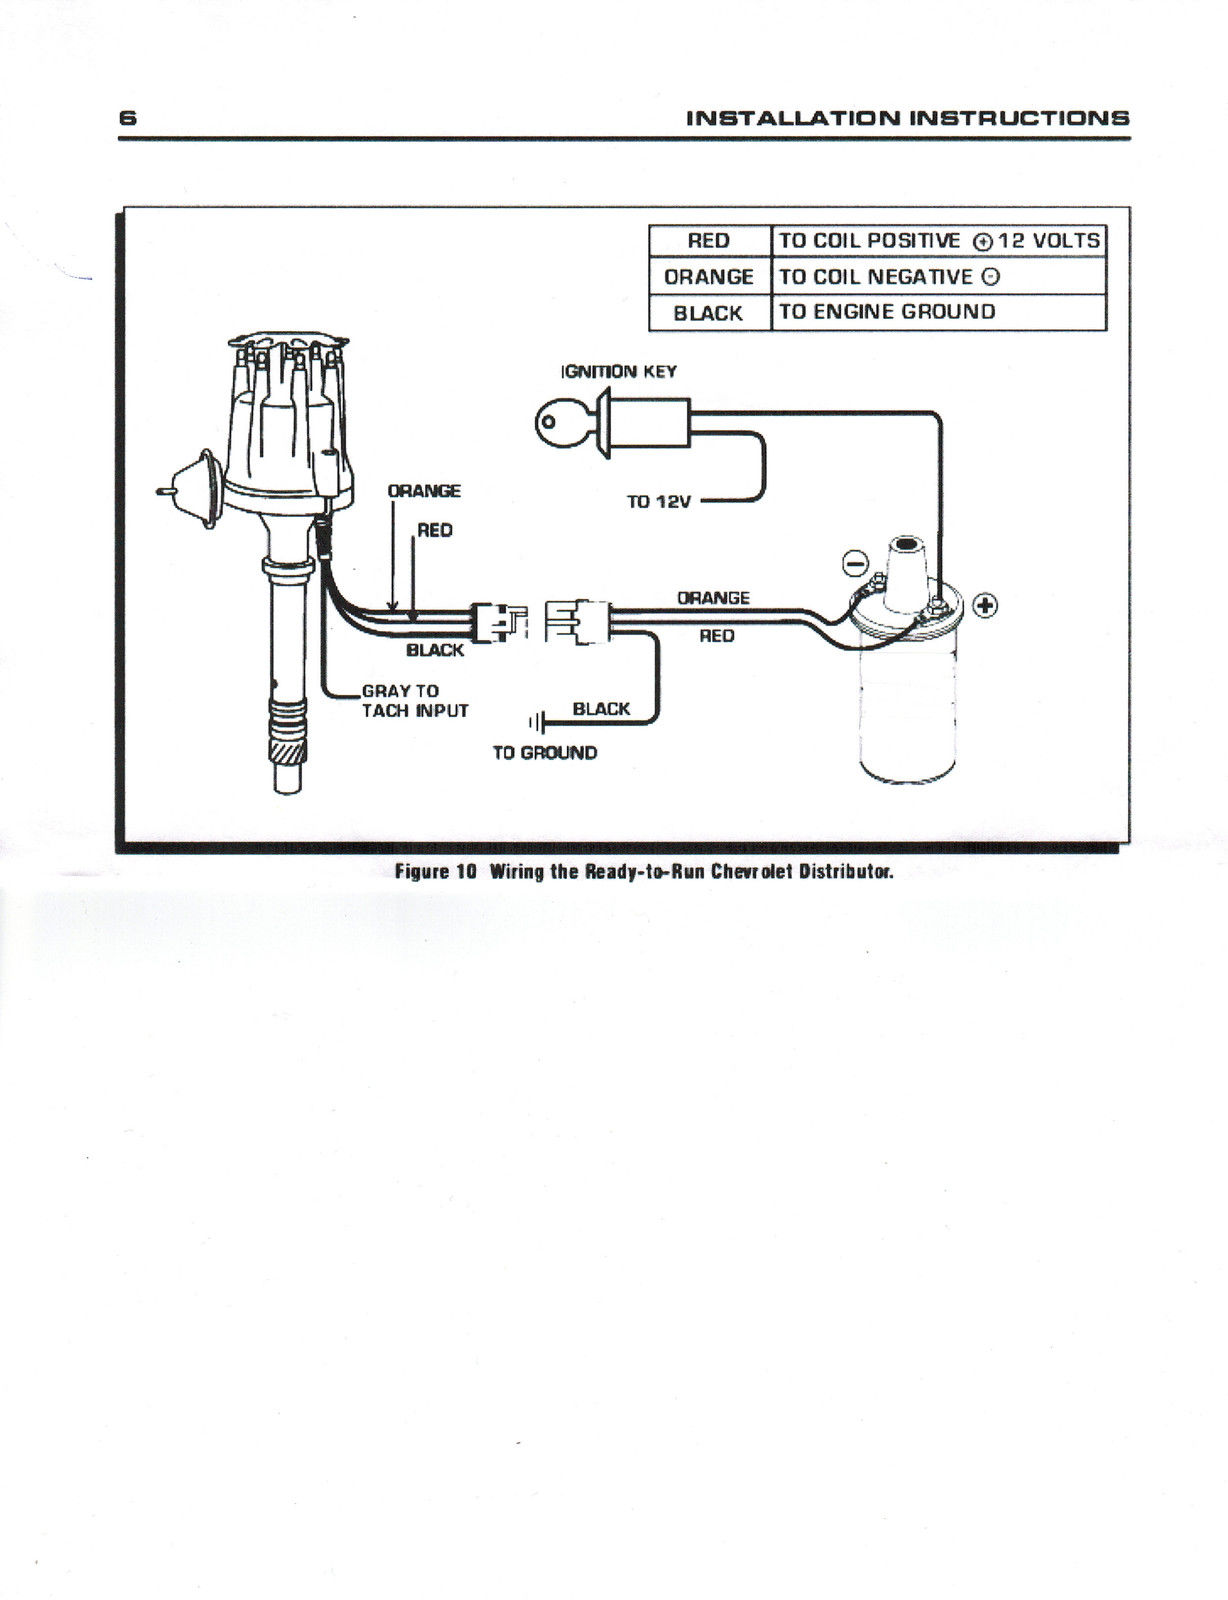 ford 360 coil wiring - wiring diagrams auto clear-product-a -  clear-product-a.moskitofree.it  moskitofree.it